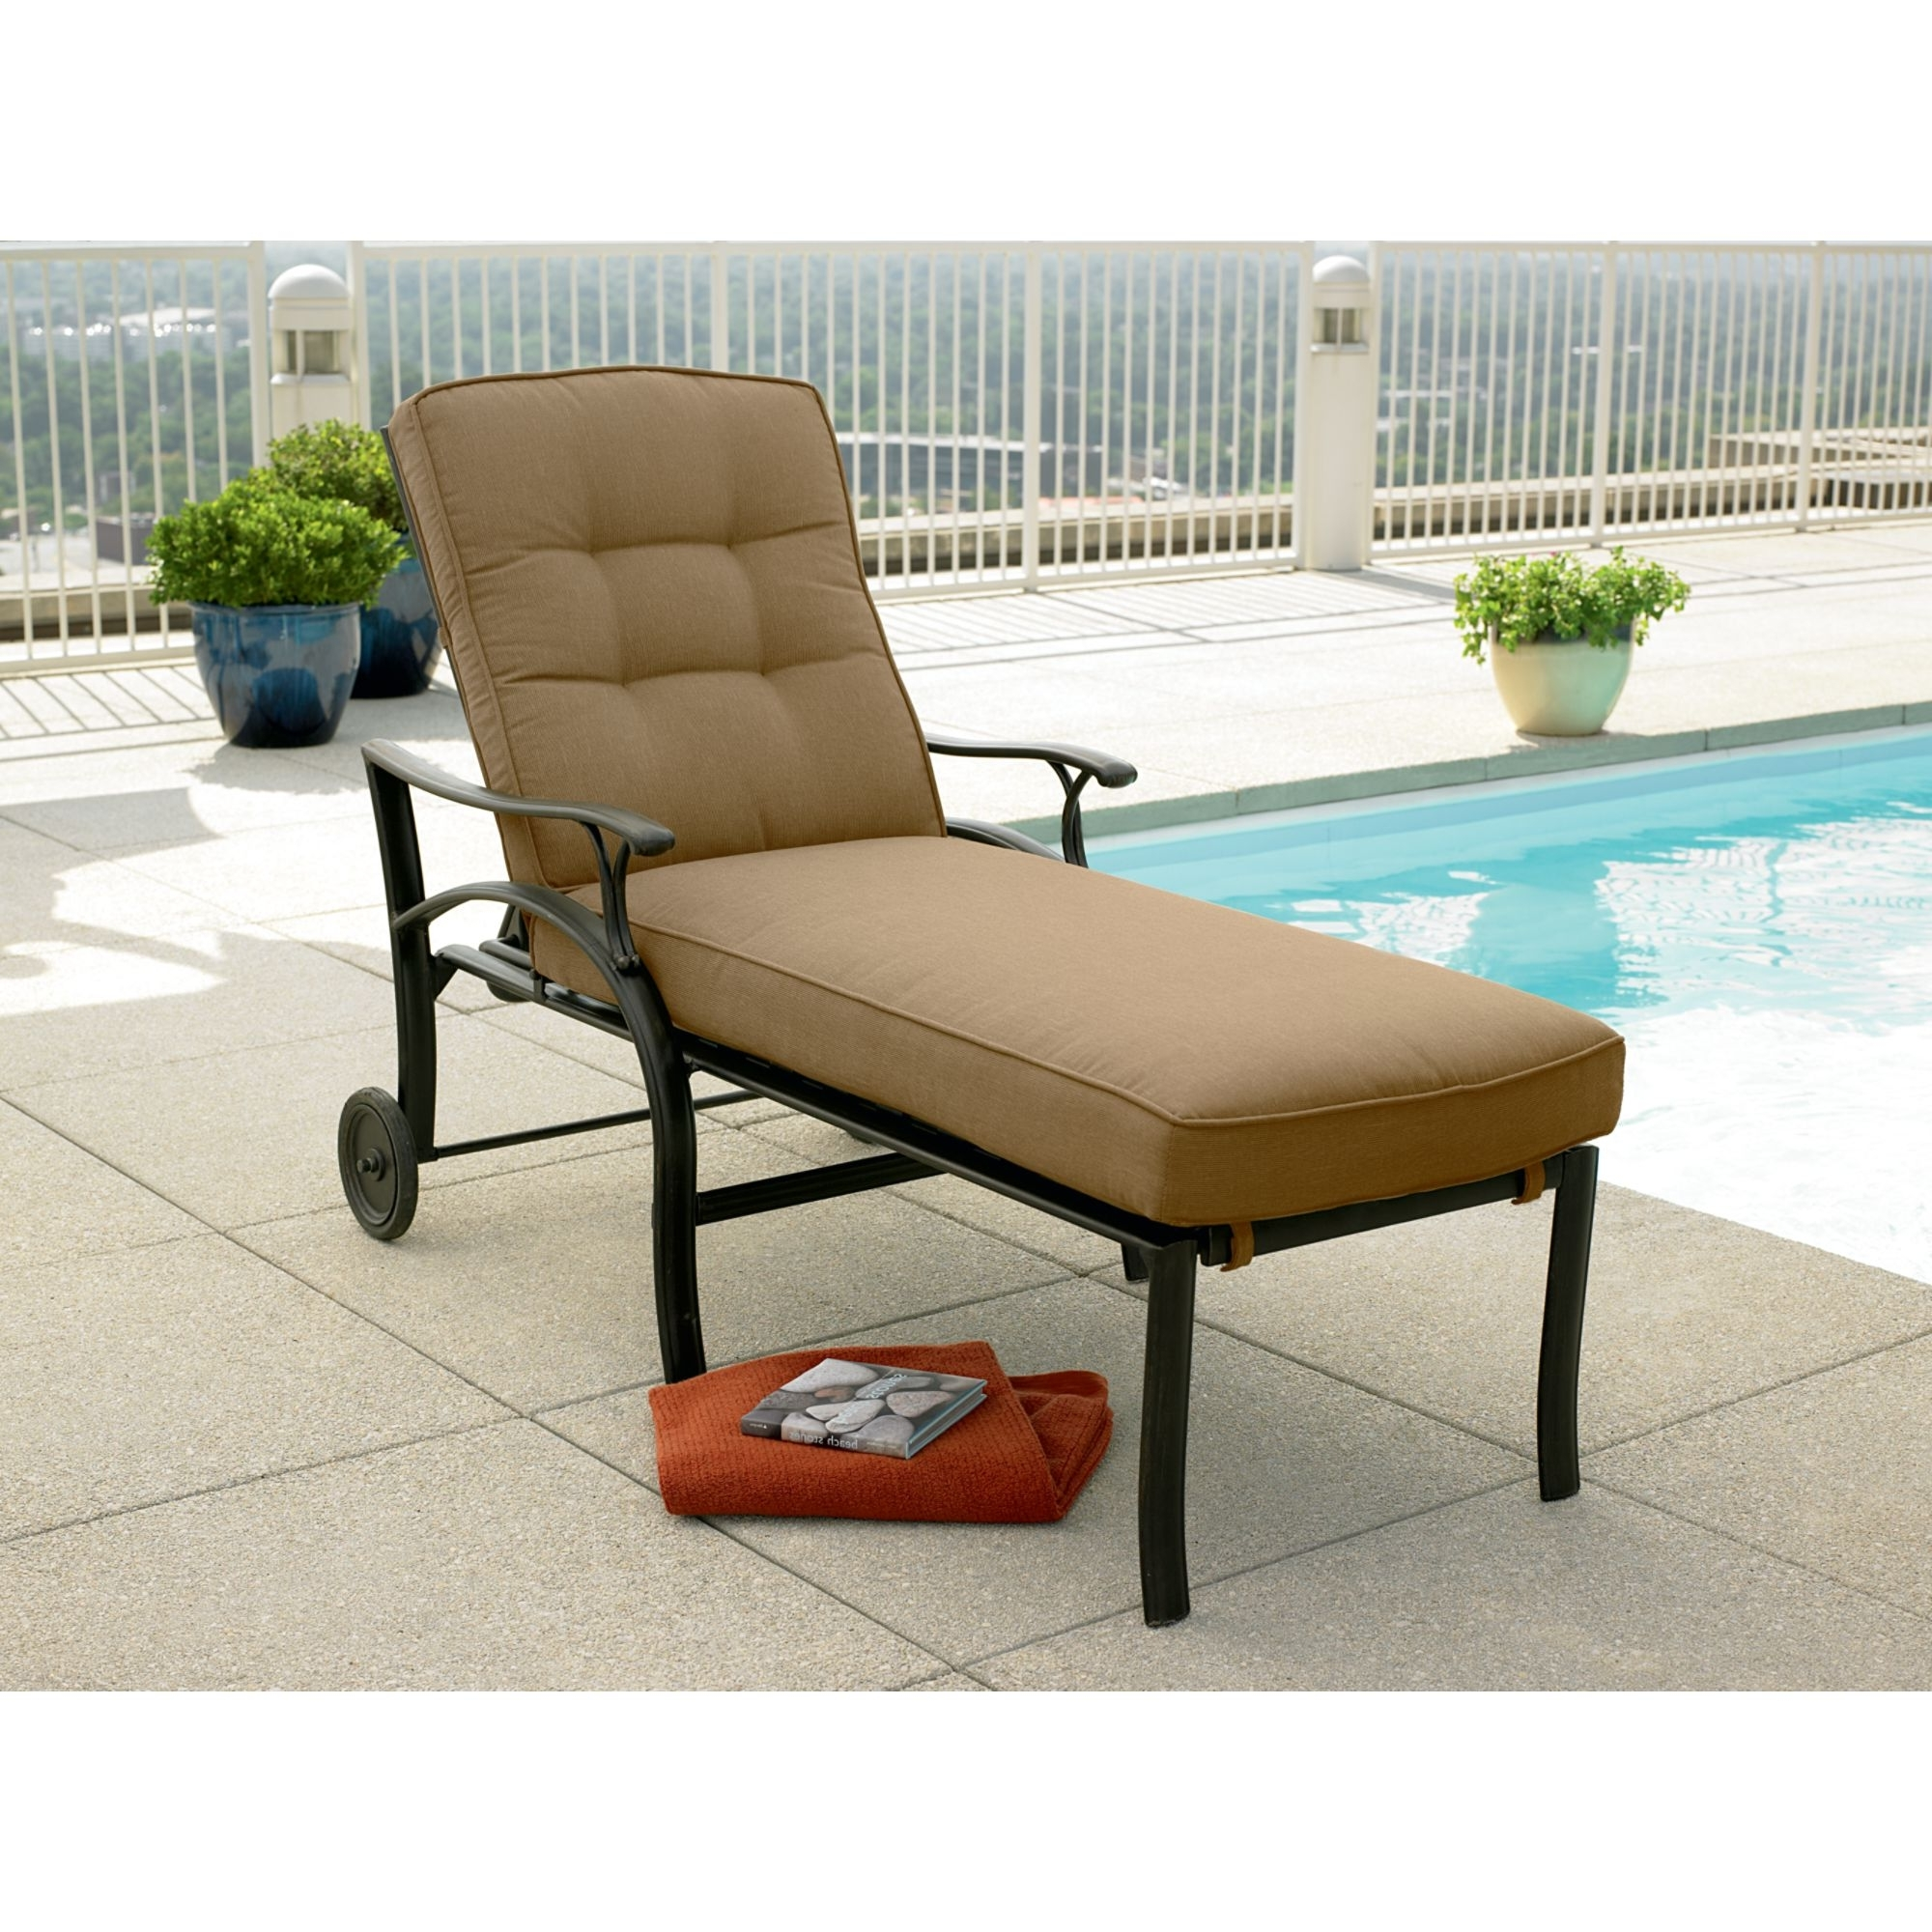 Furniture: Patio Chaise Lounge Chairs Walmart Lounges With Pool Throughout 2017 Adelaide Chaise Lounge Chairs (View 5 of 15)